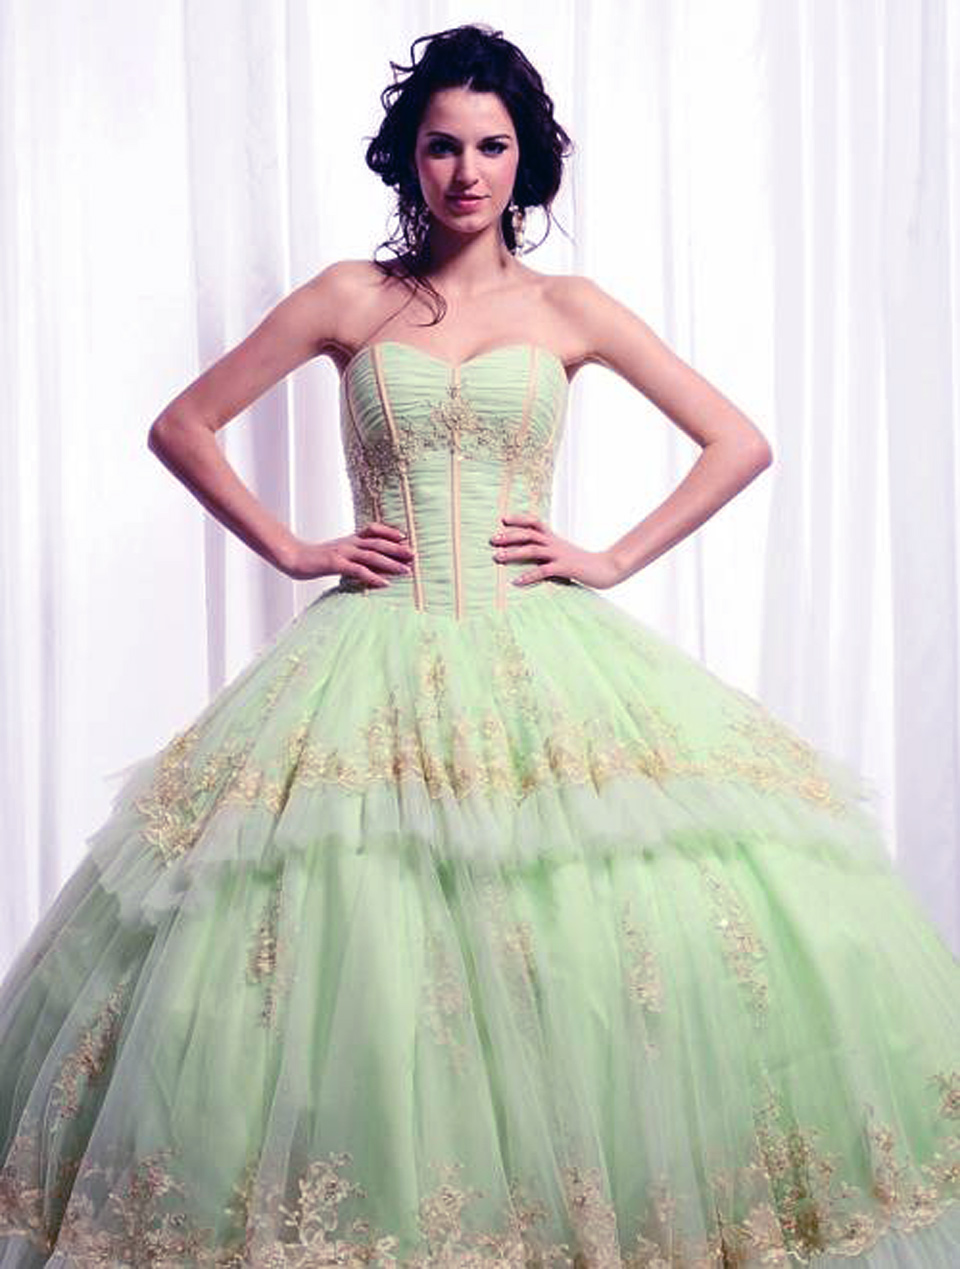 Big Puffy Prom Dresses Green Pictures : Fashion Gallery